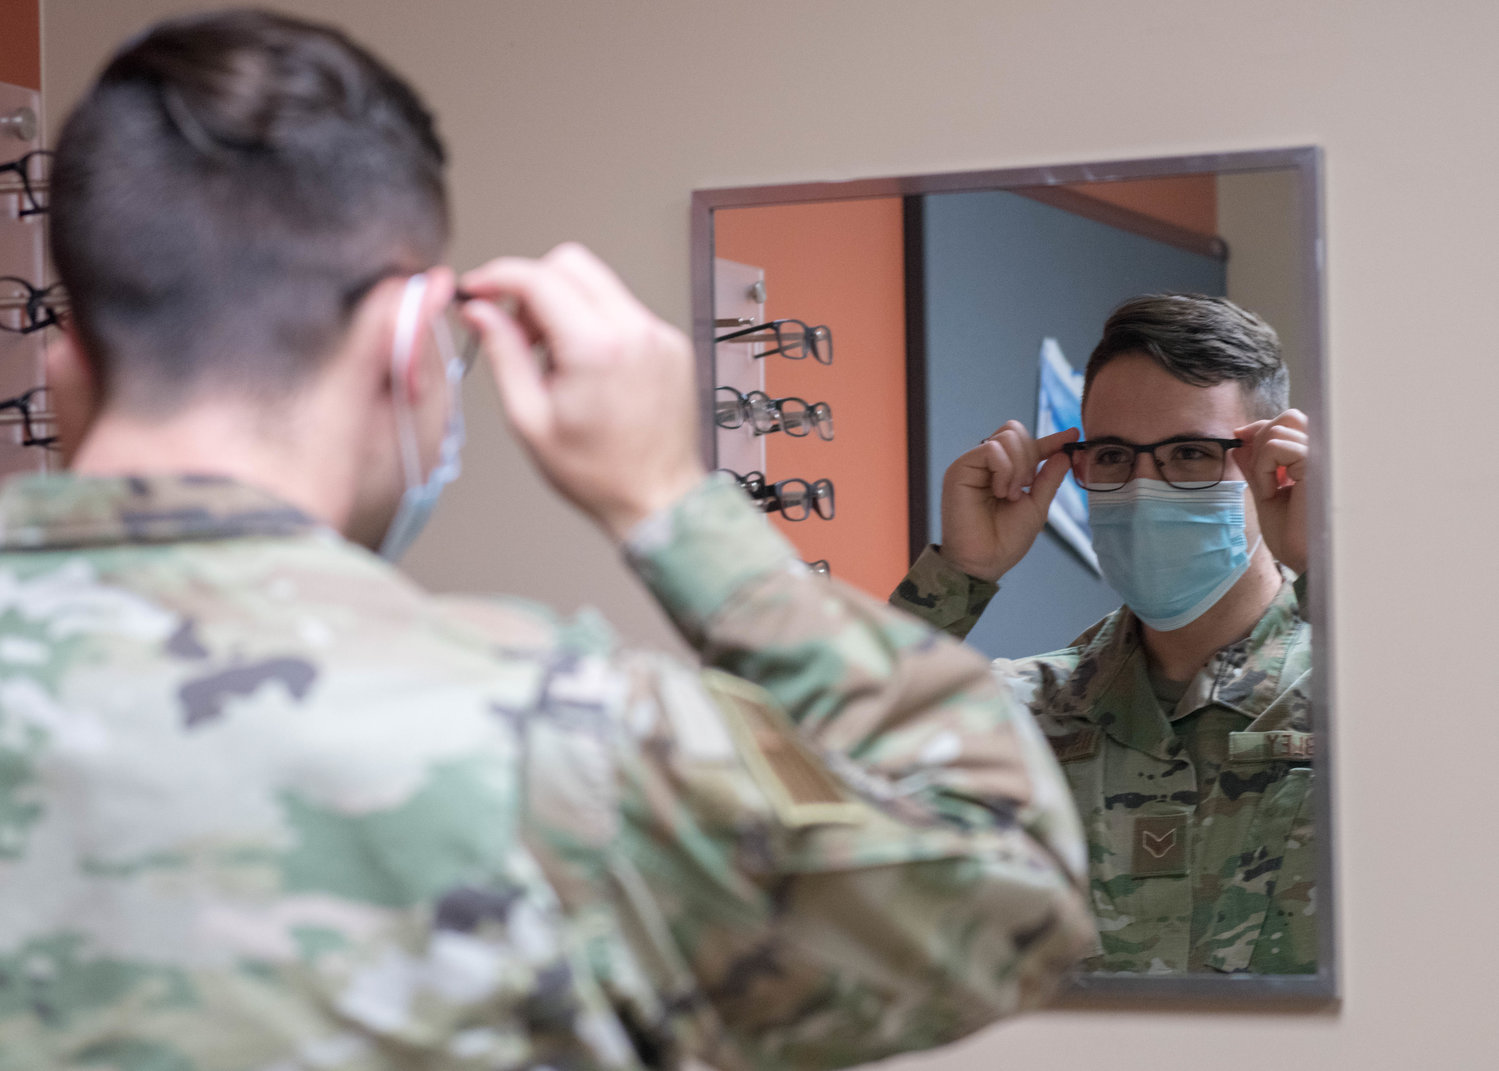 Senior Airman Troy Dibley, 61st Fighter Squadron F-35A Lightning II avionics journeyman, tries on a pair of prescription glasses June 9, 2020, at Luke Air Force Base. The Luke Optometry clinic provides a choice of more than 50 styles of customized and standard frames.